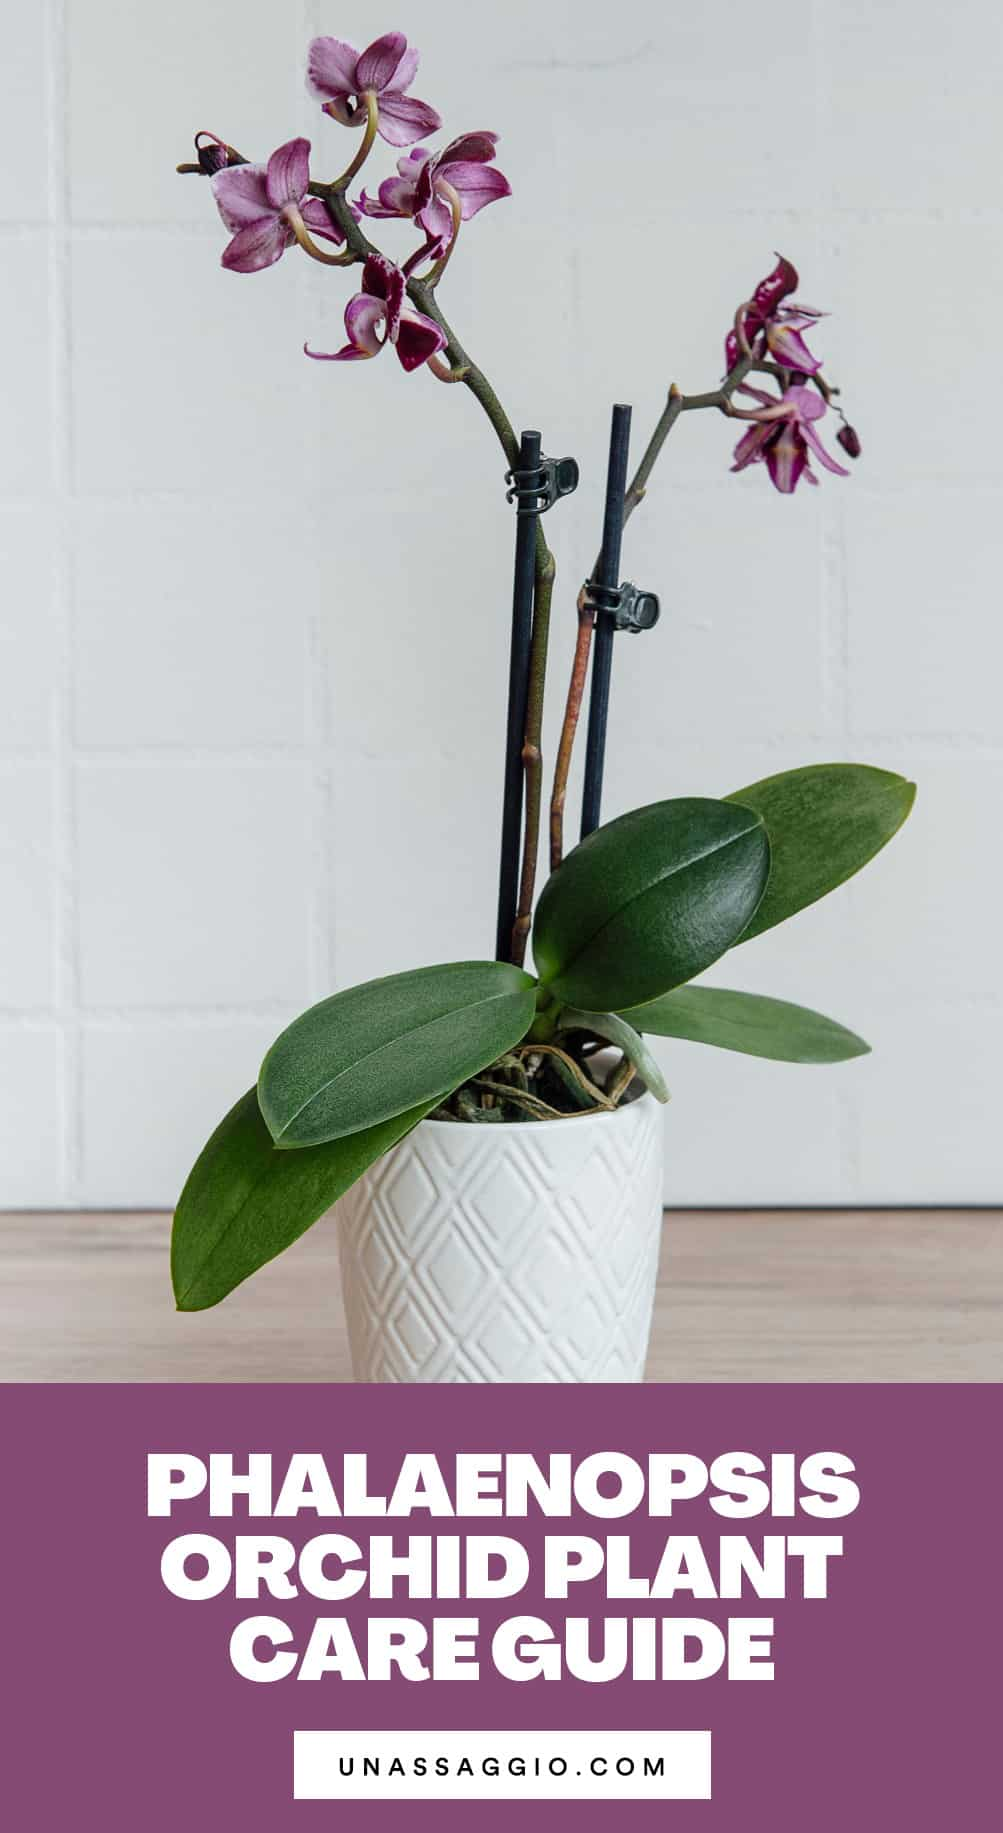 Phalaenopsis Orchid Plant Care Guide